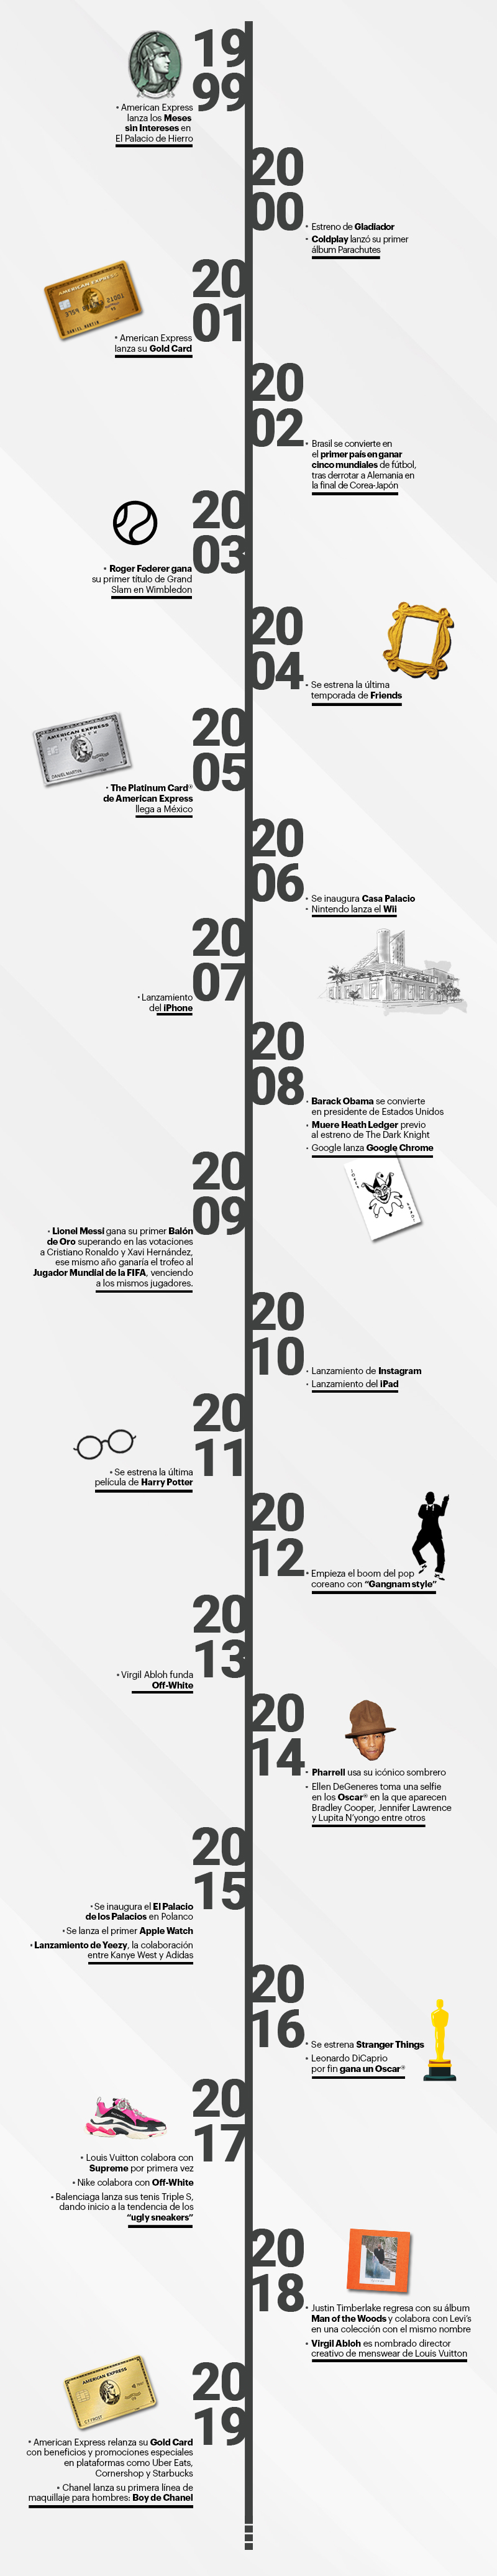 Esquire-TimeLine-AmericanExpress-NotaF